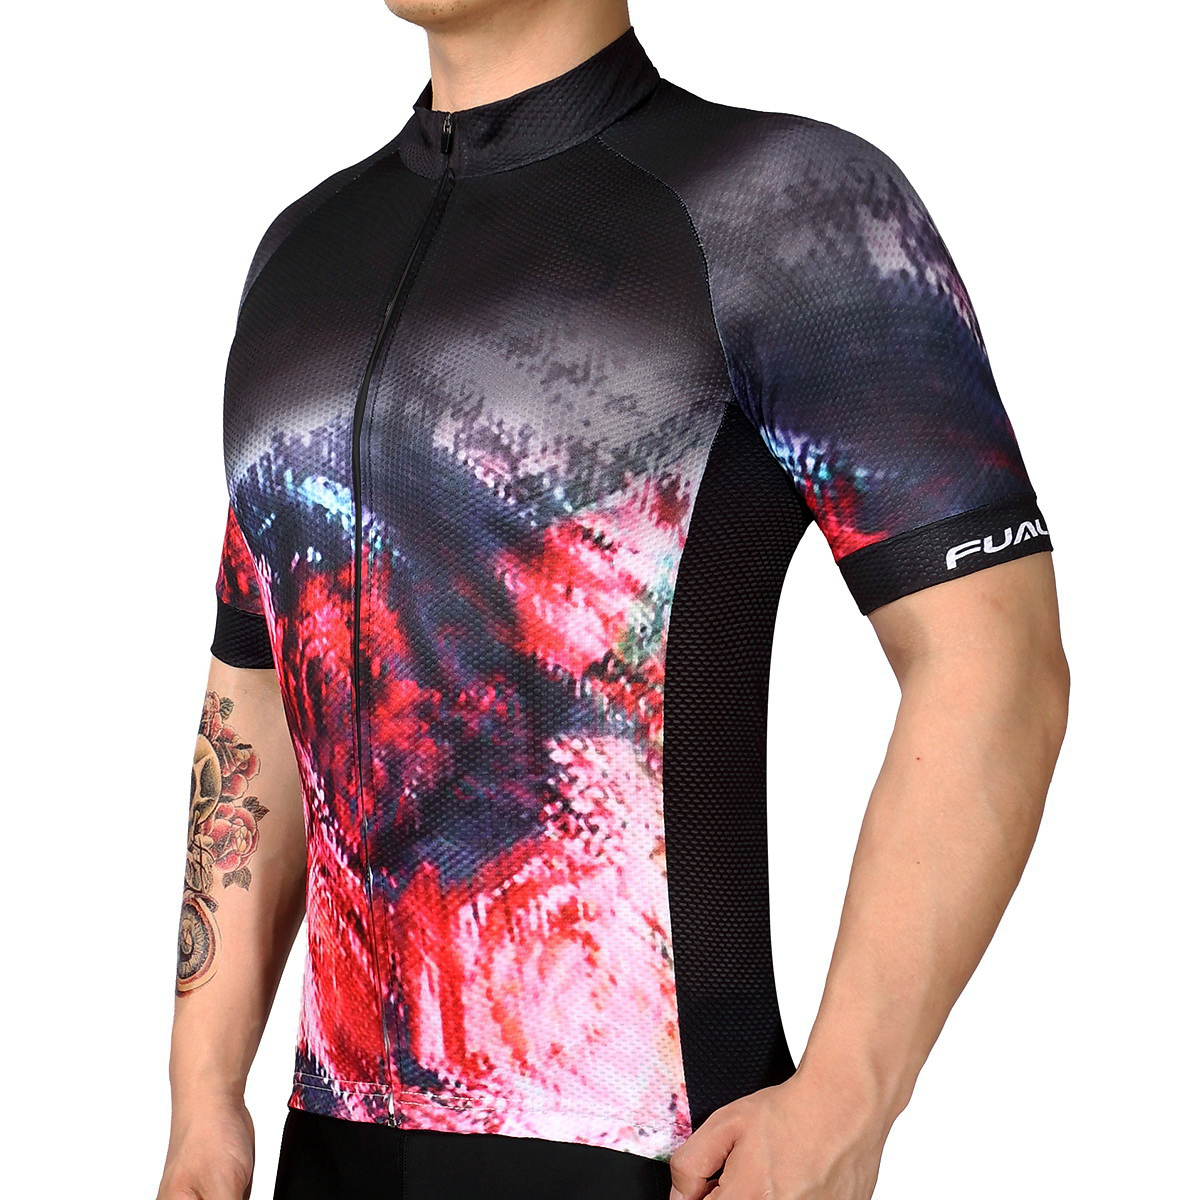 2019 LKPRBD Bicycle mtb speckle cycling jersey only short sleeve cycling clothing ropa ciclismo invierno bike jersey in Cycling Jerseys from Sports Entertainment